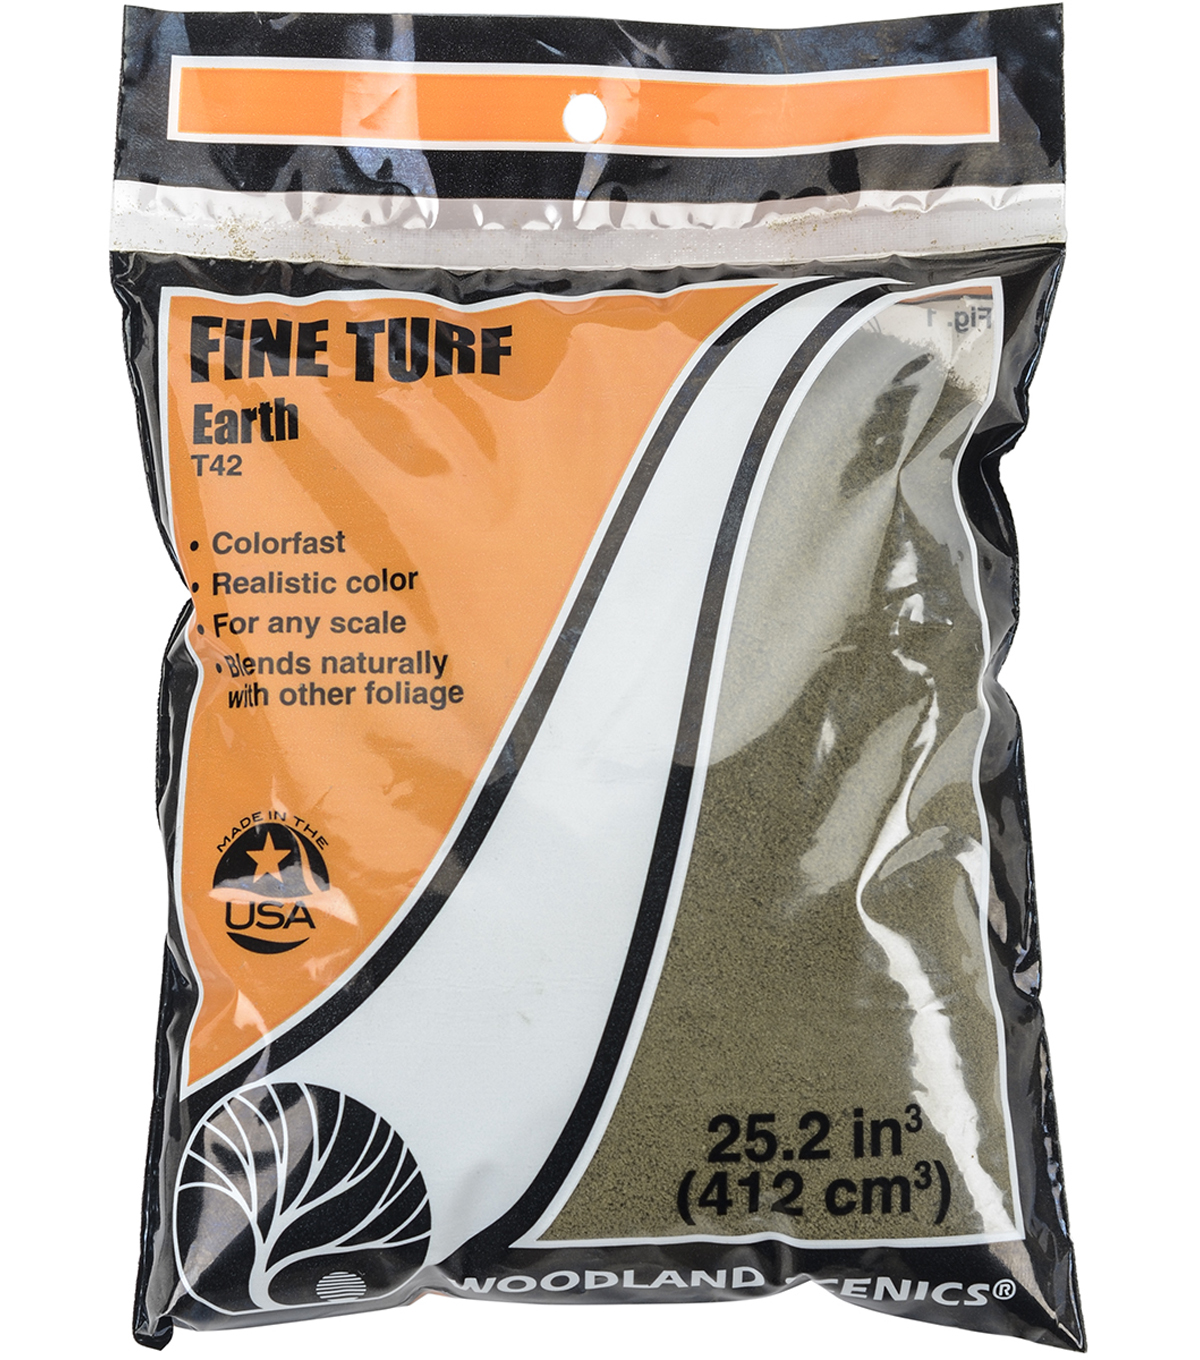 Woodland Scenics Fine Turf 18 To 25.2 Cubic Inches